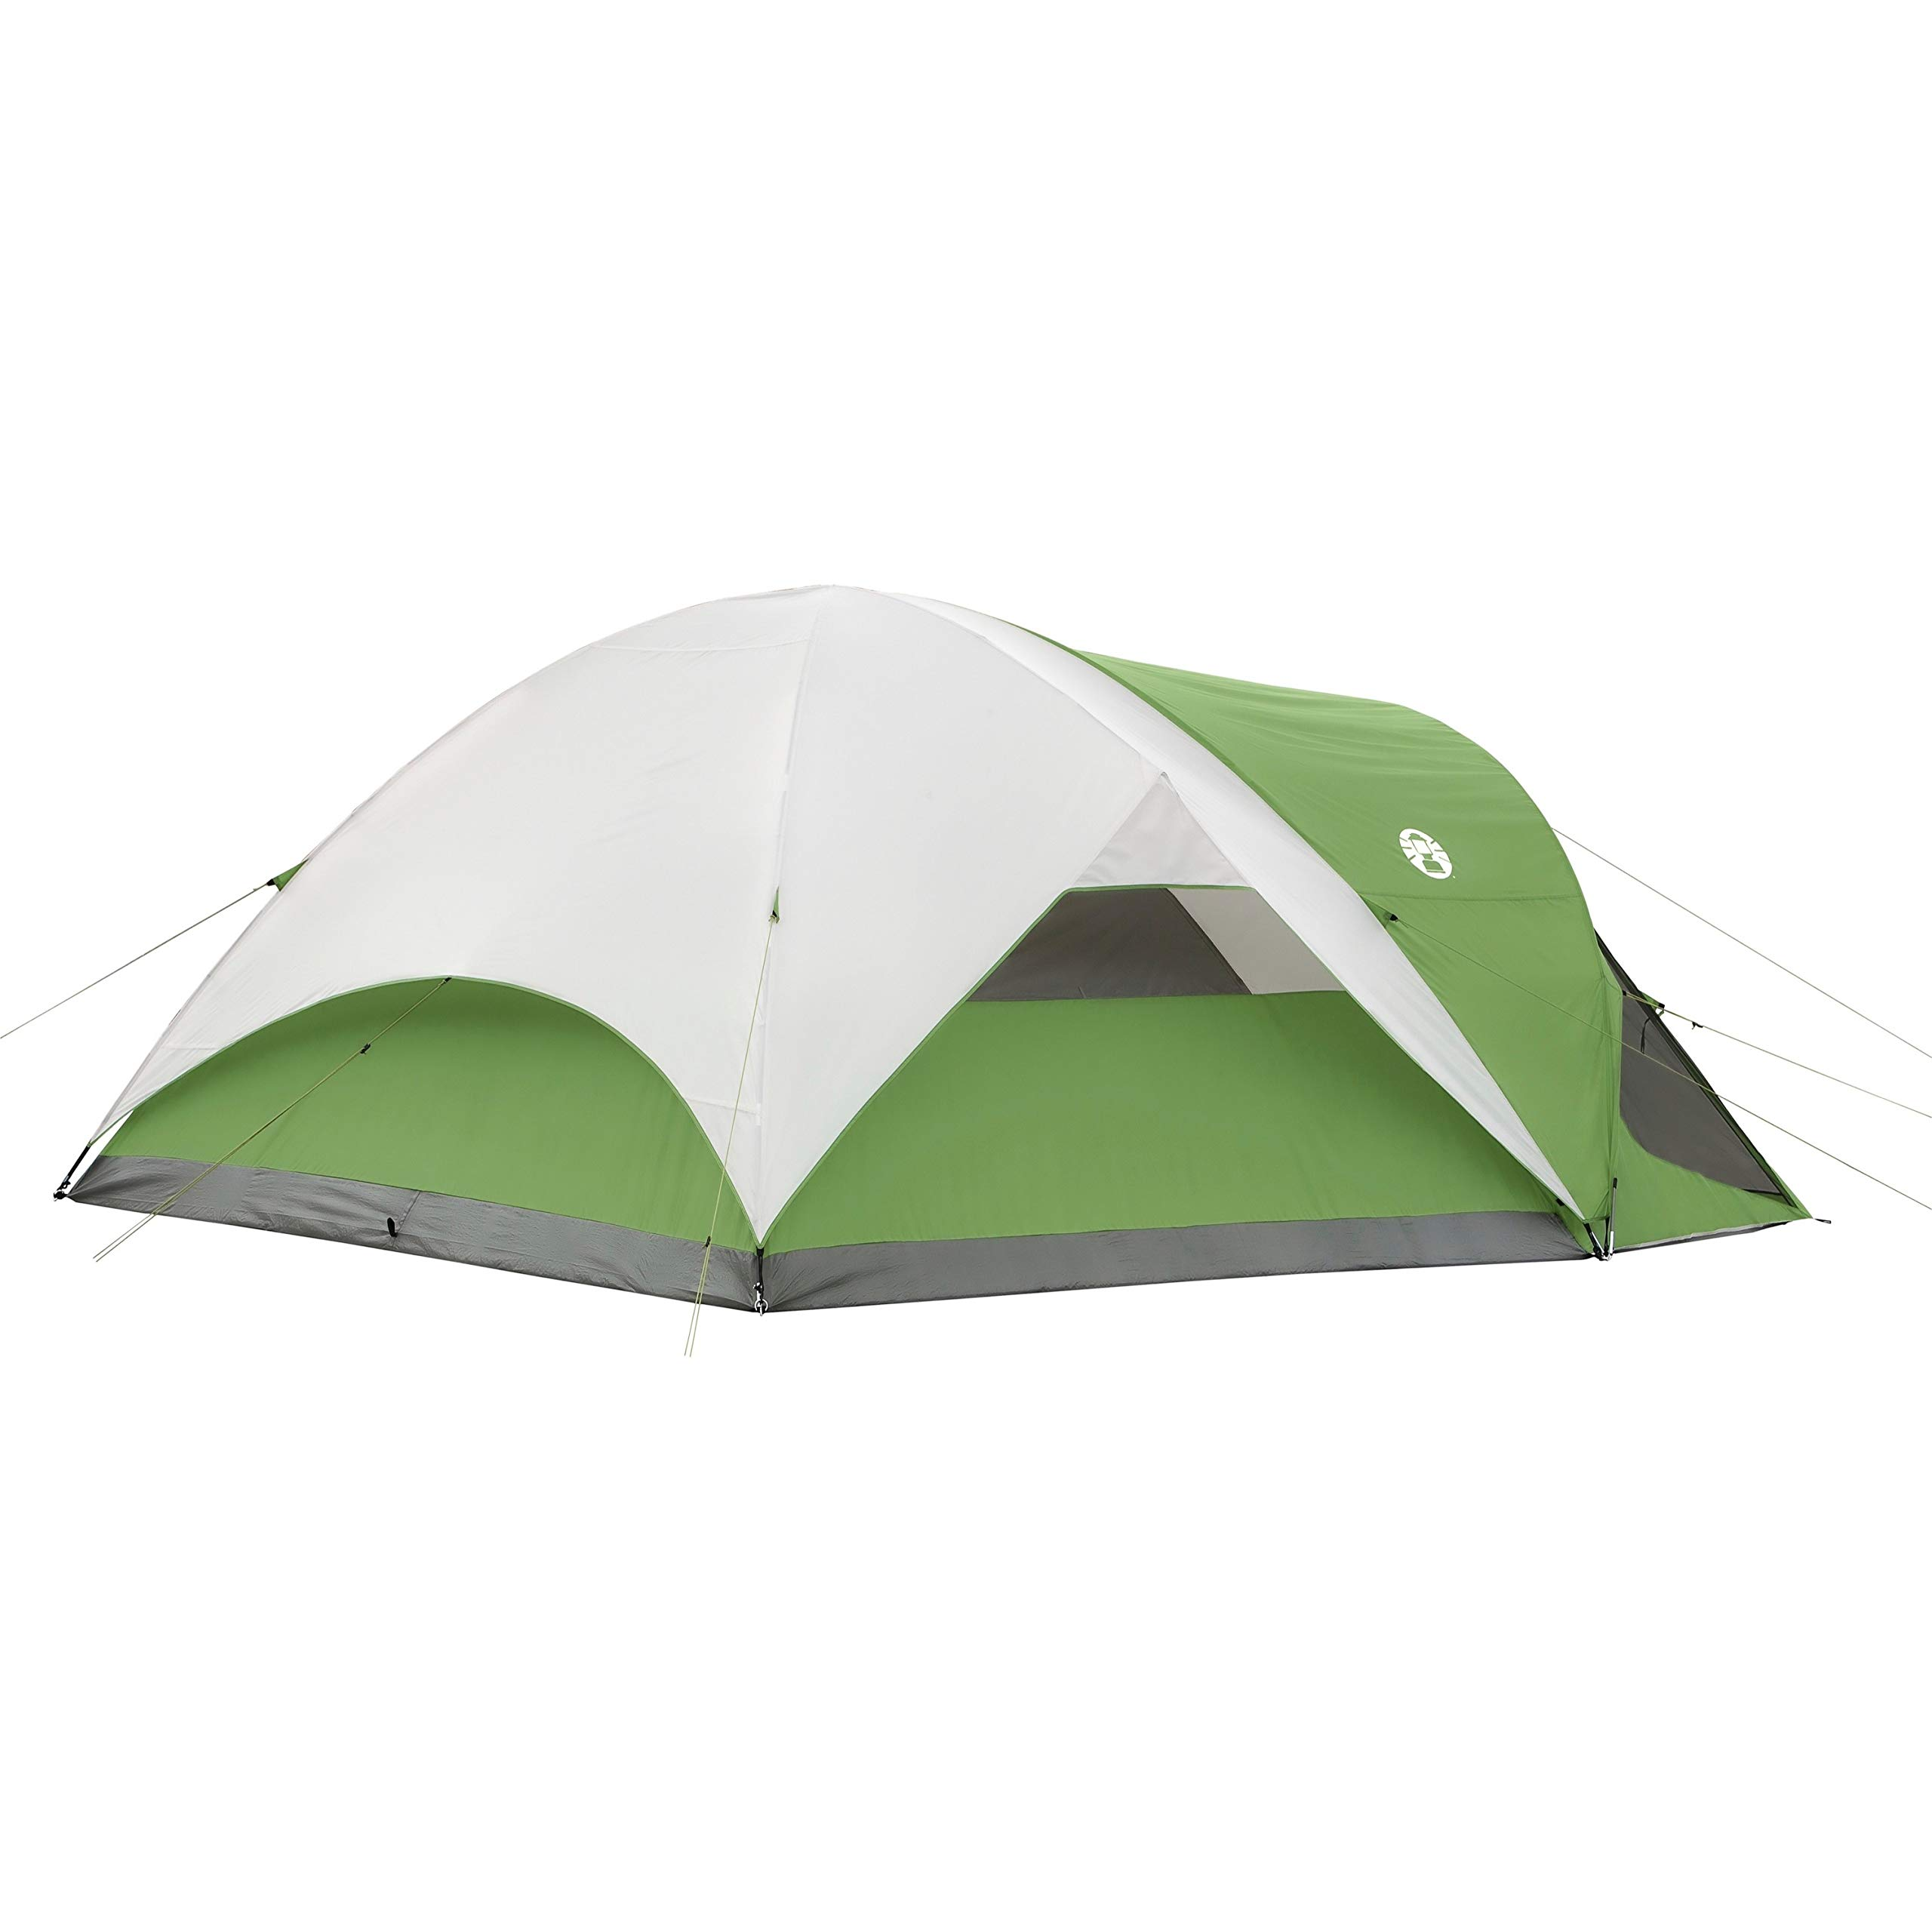 Galleon Coleman 8 Person Dome Tent With Screen Room